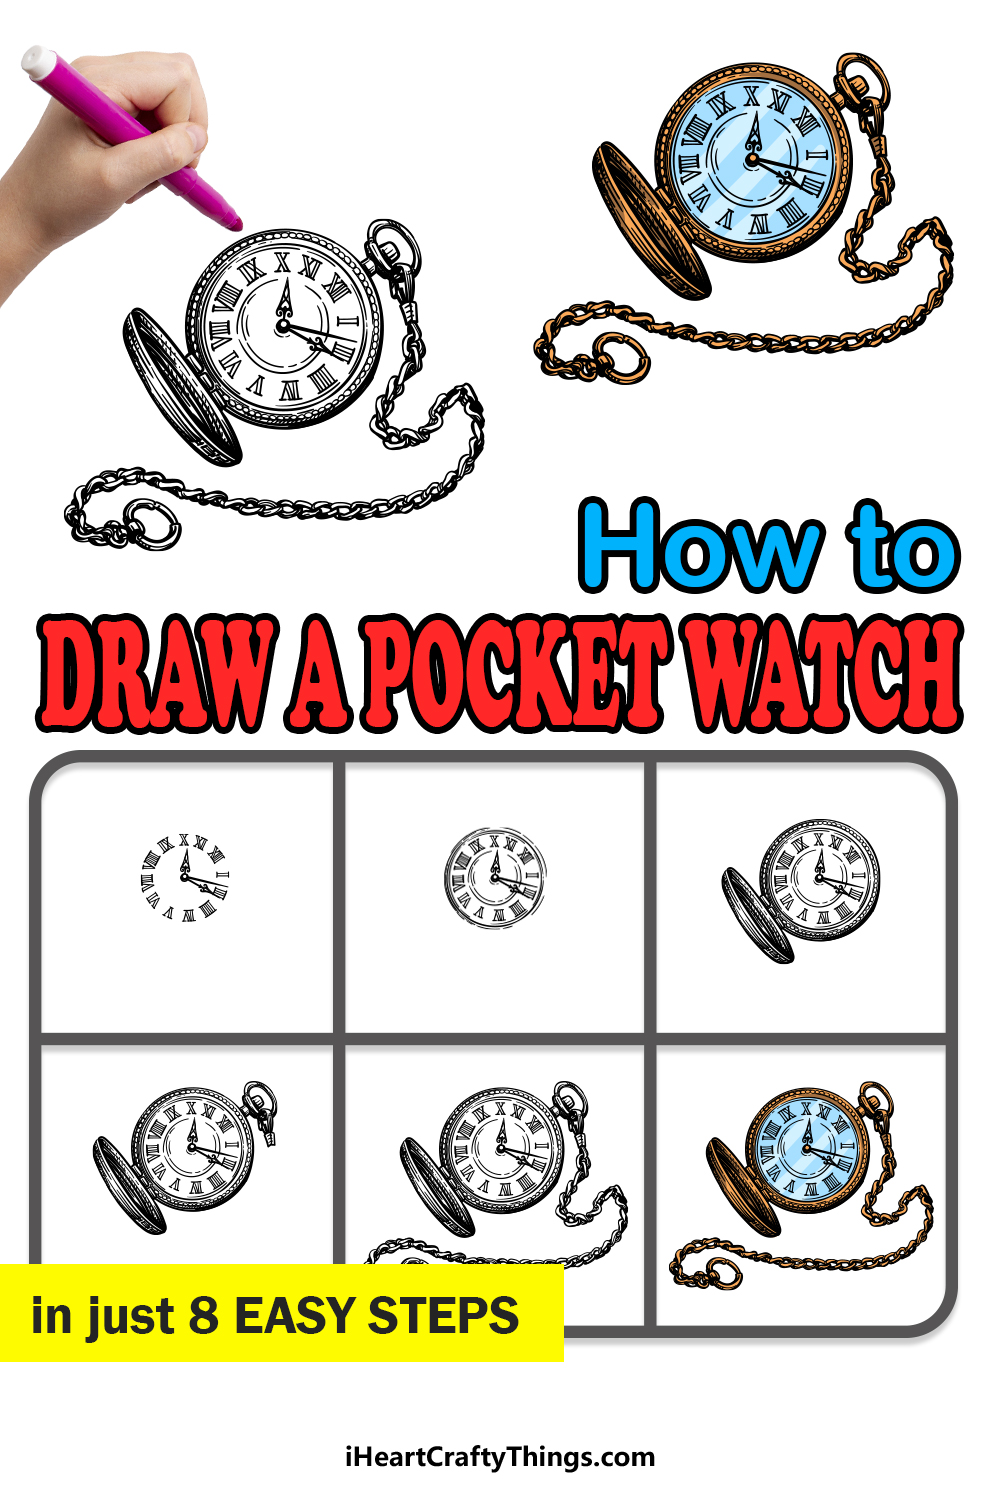 how to draw a pocket watch in 8 easy steps